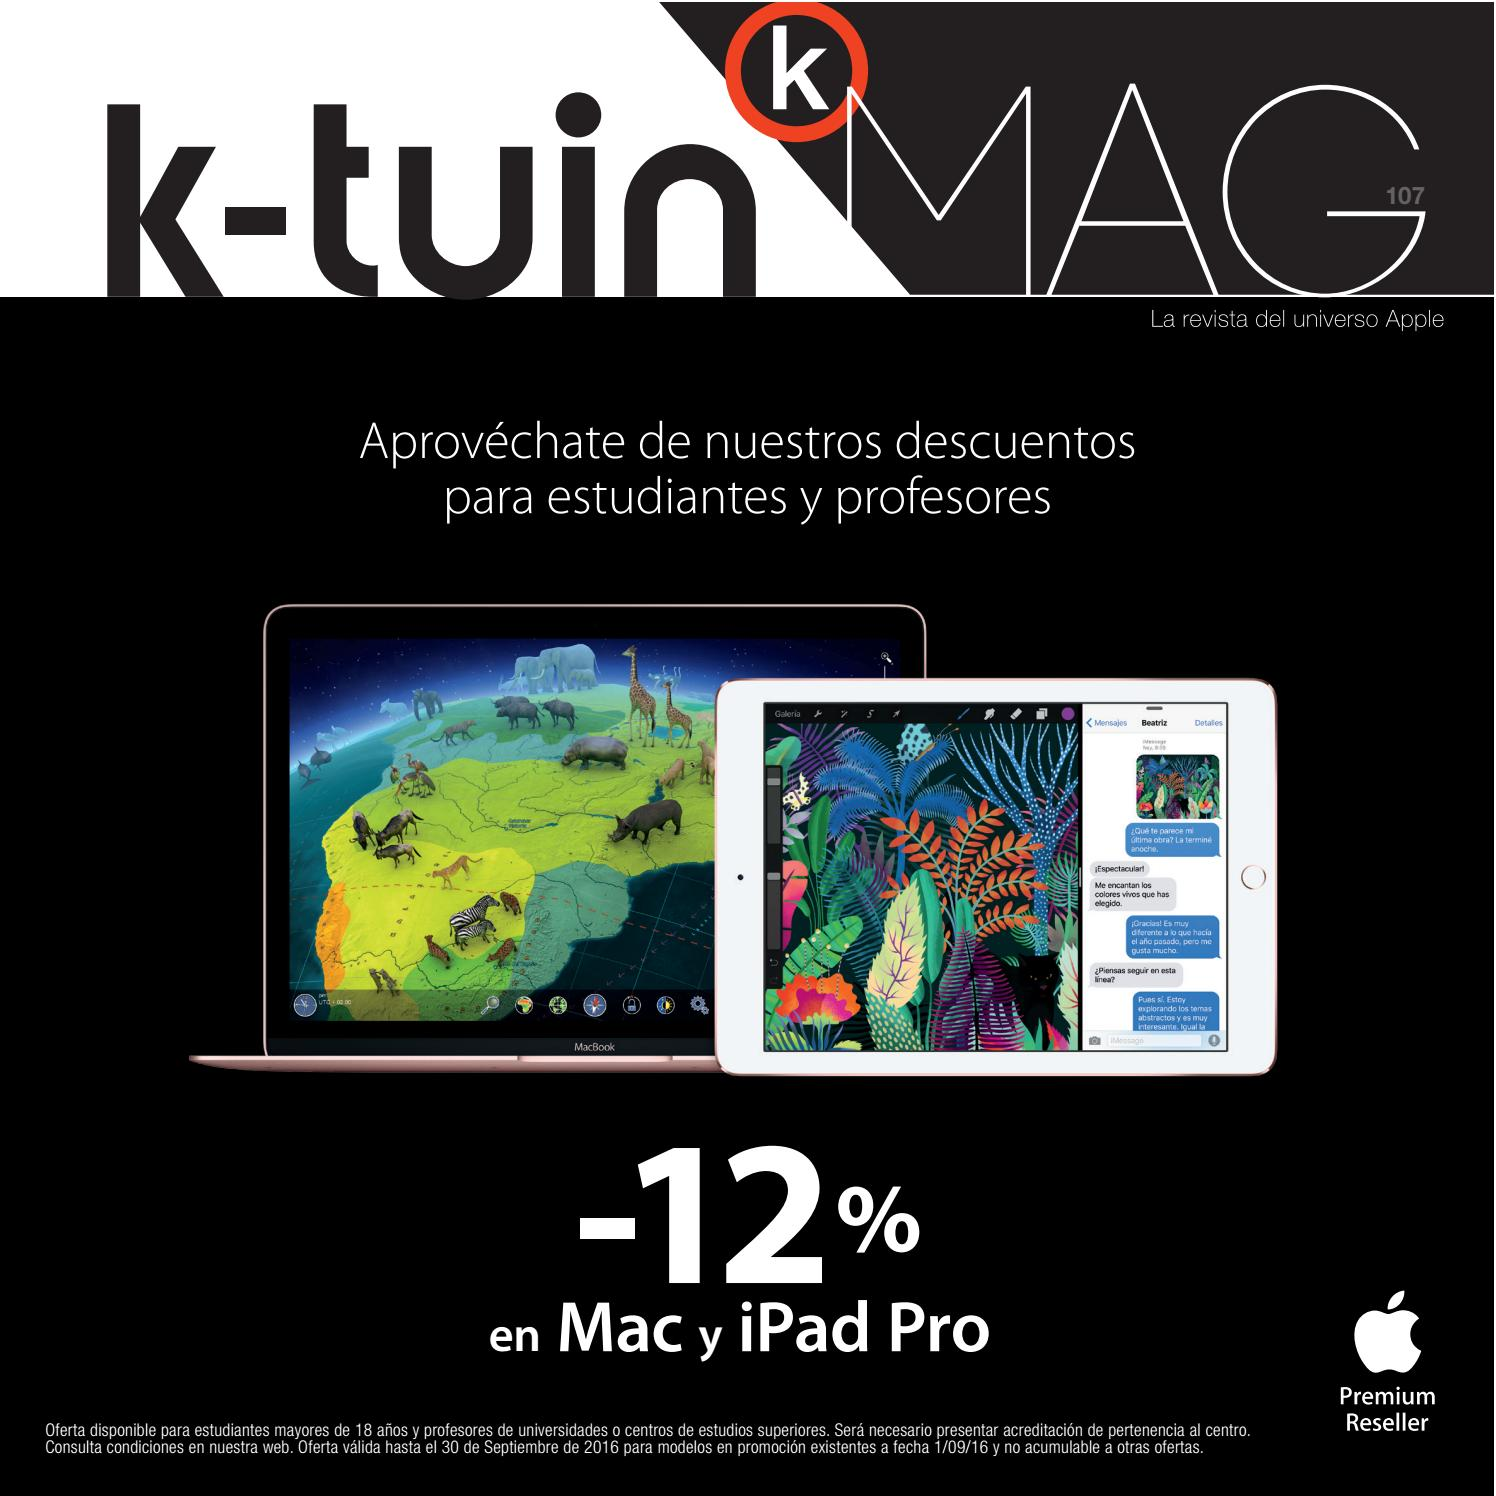 de8a56b4d K-tuin Mag 107 by K-tuin, Tiendas Apple - issuu